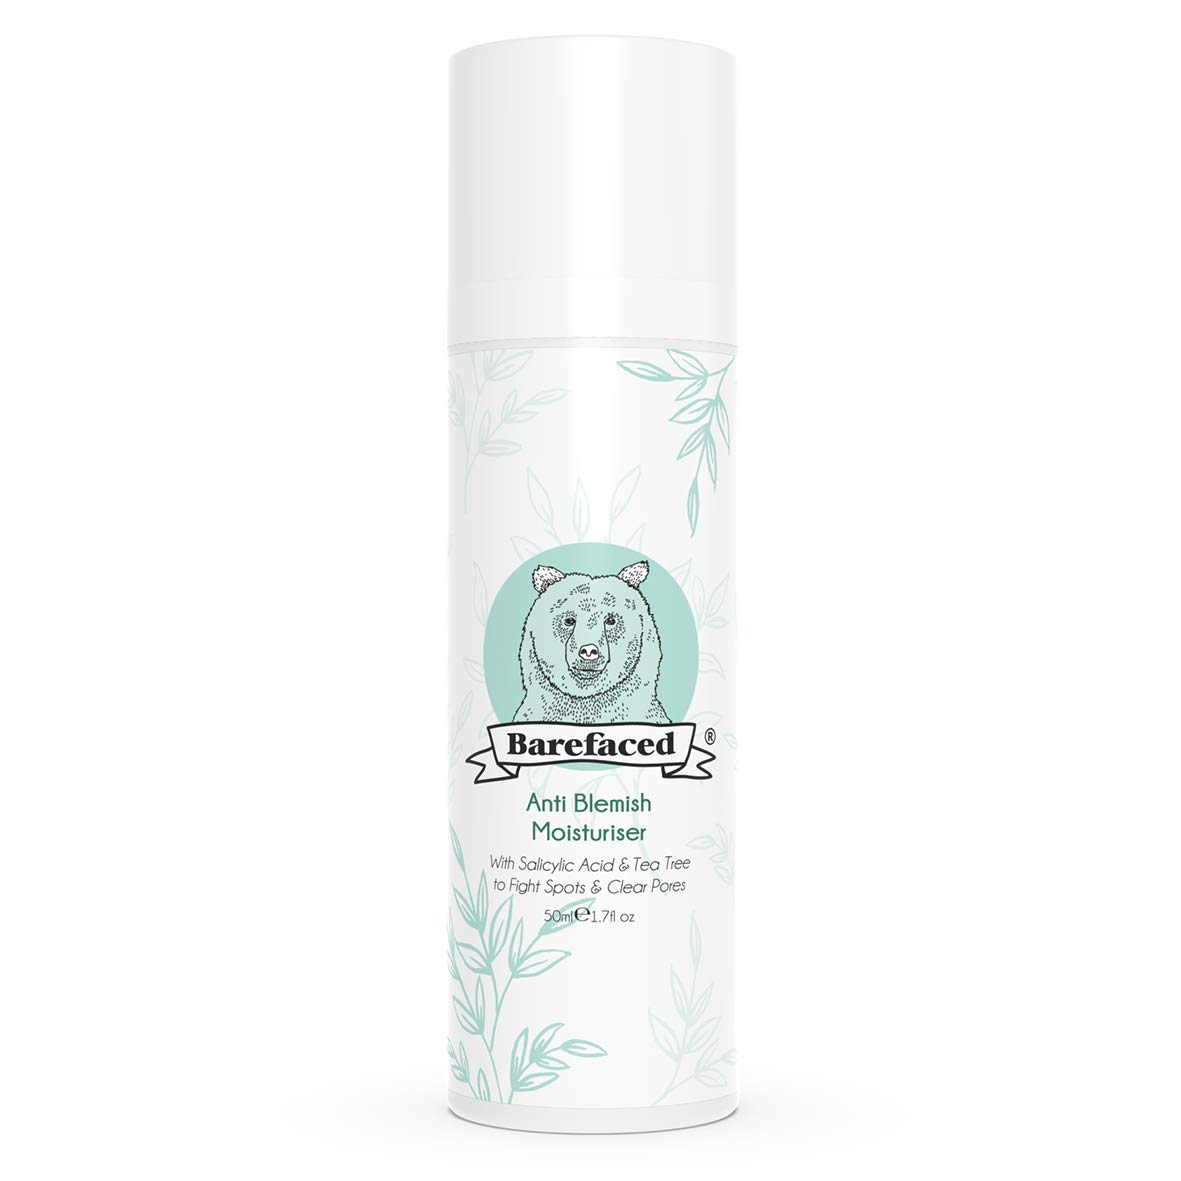 BeBarefaced Anti Blemish Moisturiser With Tea Tree Oil & Salicylic Acid BeBarefaced Ltd.